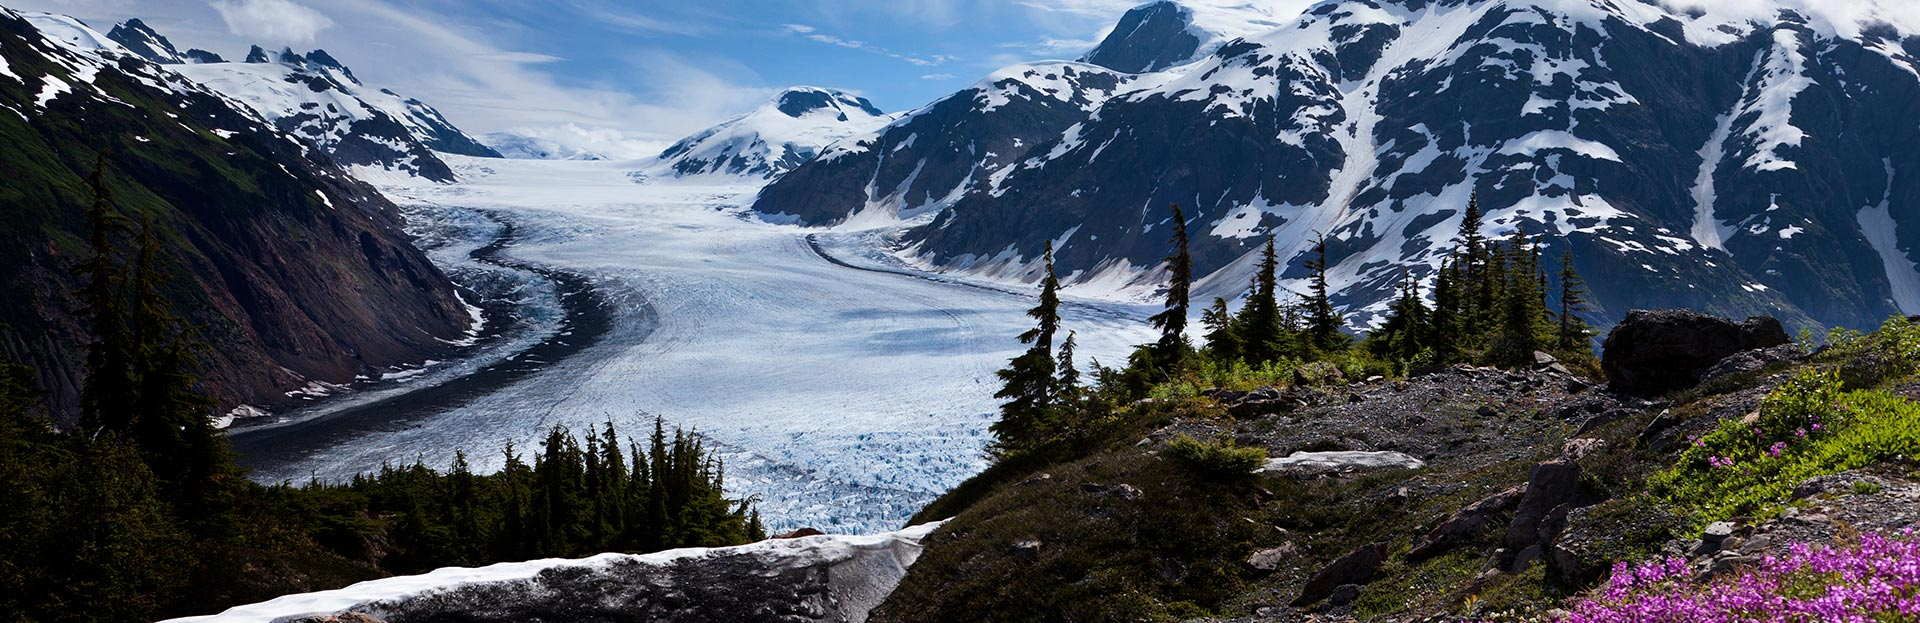 Cheap Flights To Alaska From Canada Airline Tickets